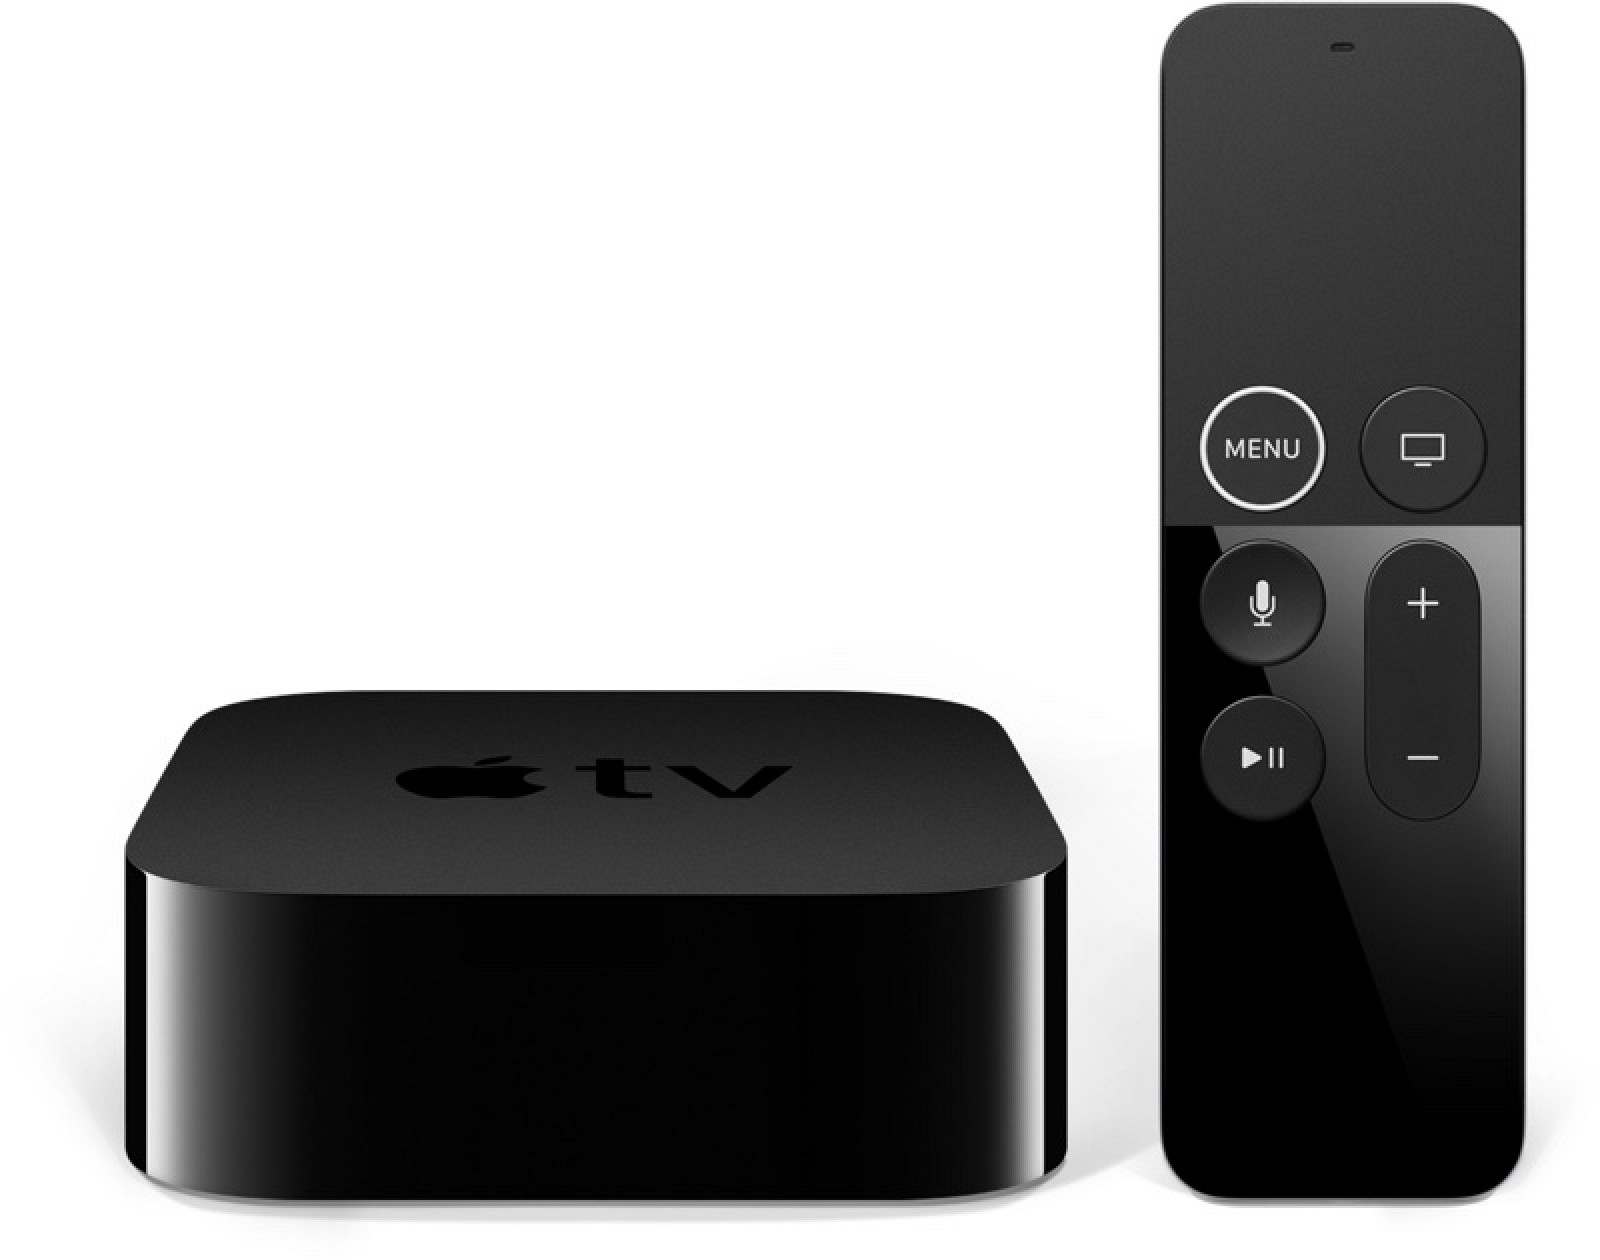 Apple Releases TvOS 12.2.1 for Fourth and Fifth-Generation Apple TV